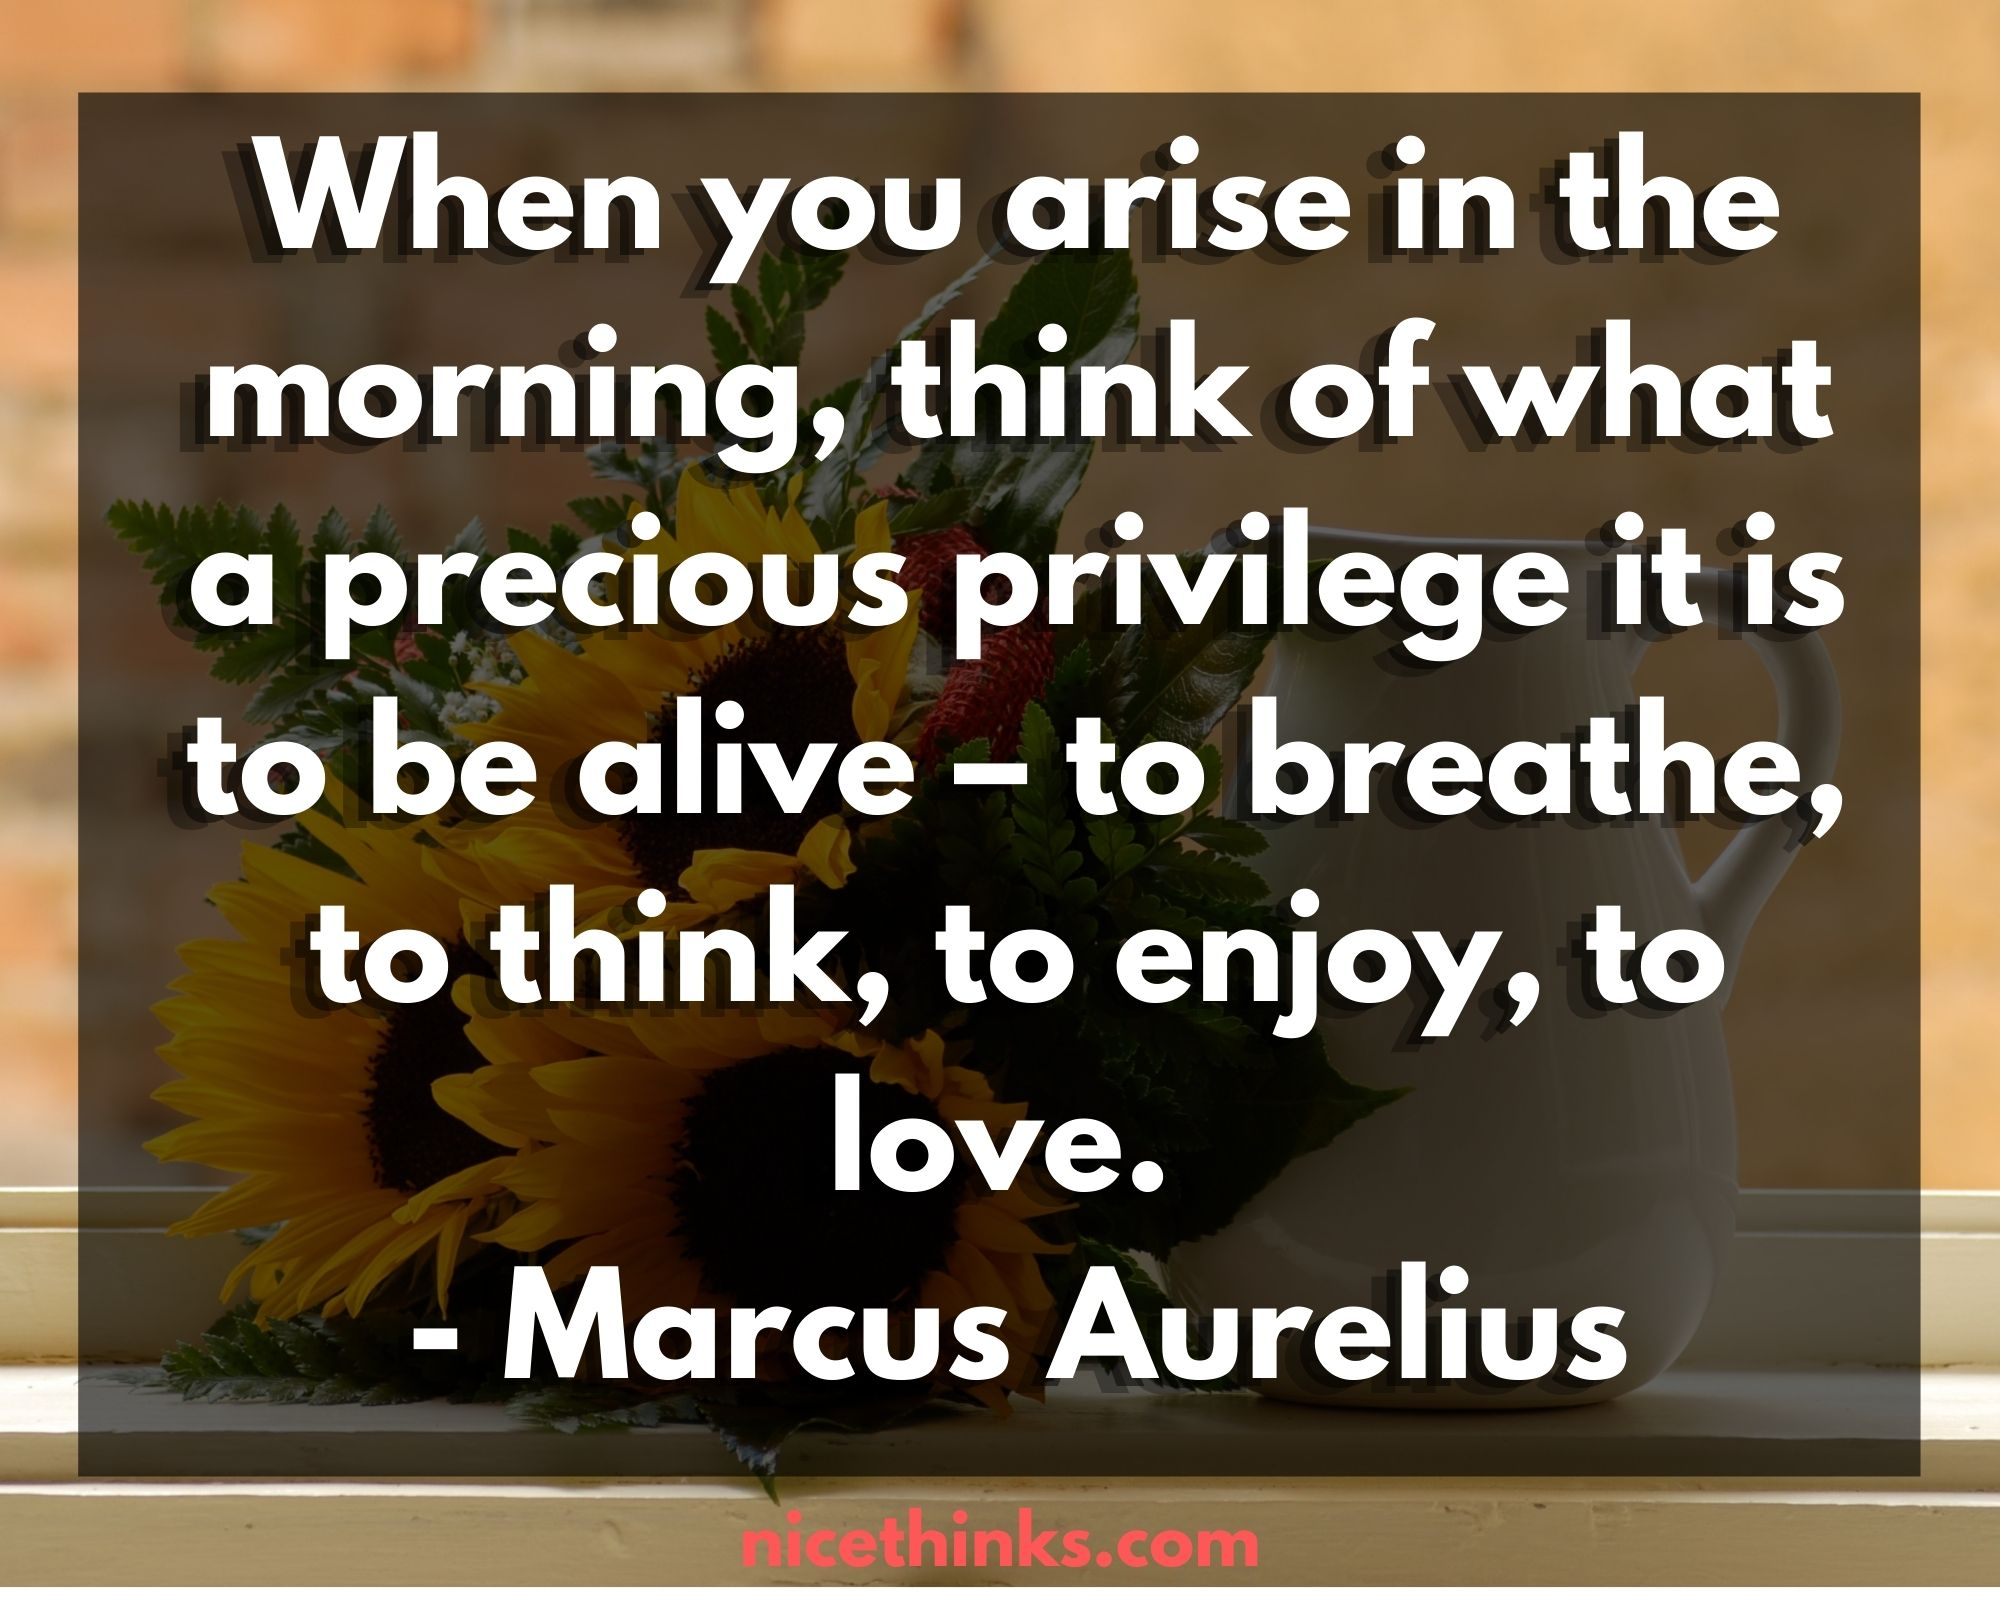 Good Morning InspiraGood Morning Inspirational Quotes by Marcus Aureliustional Quotes